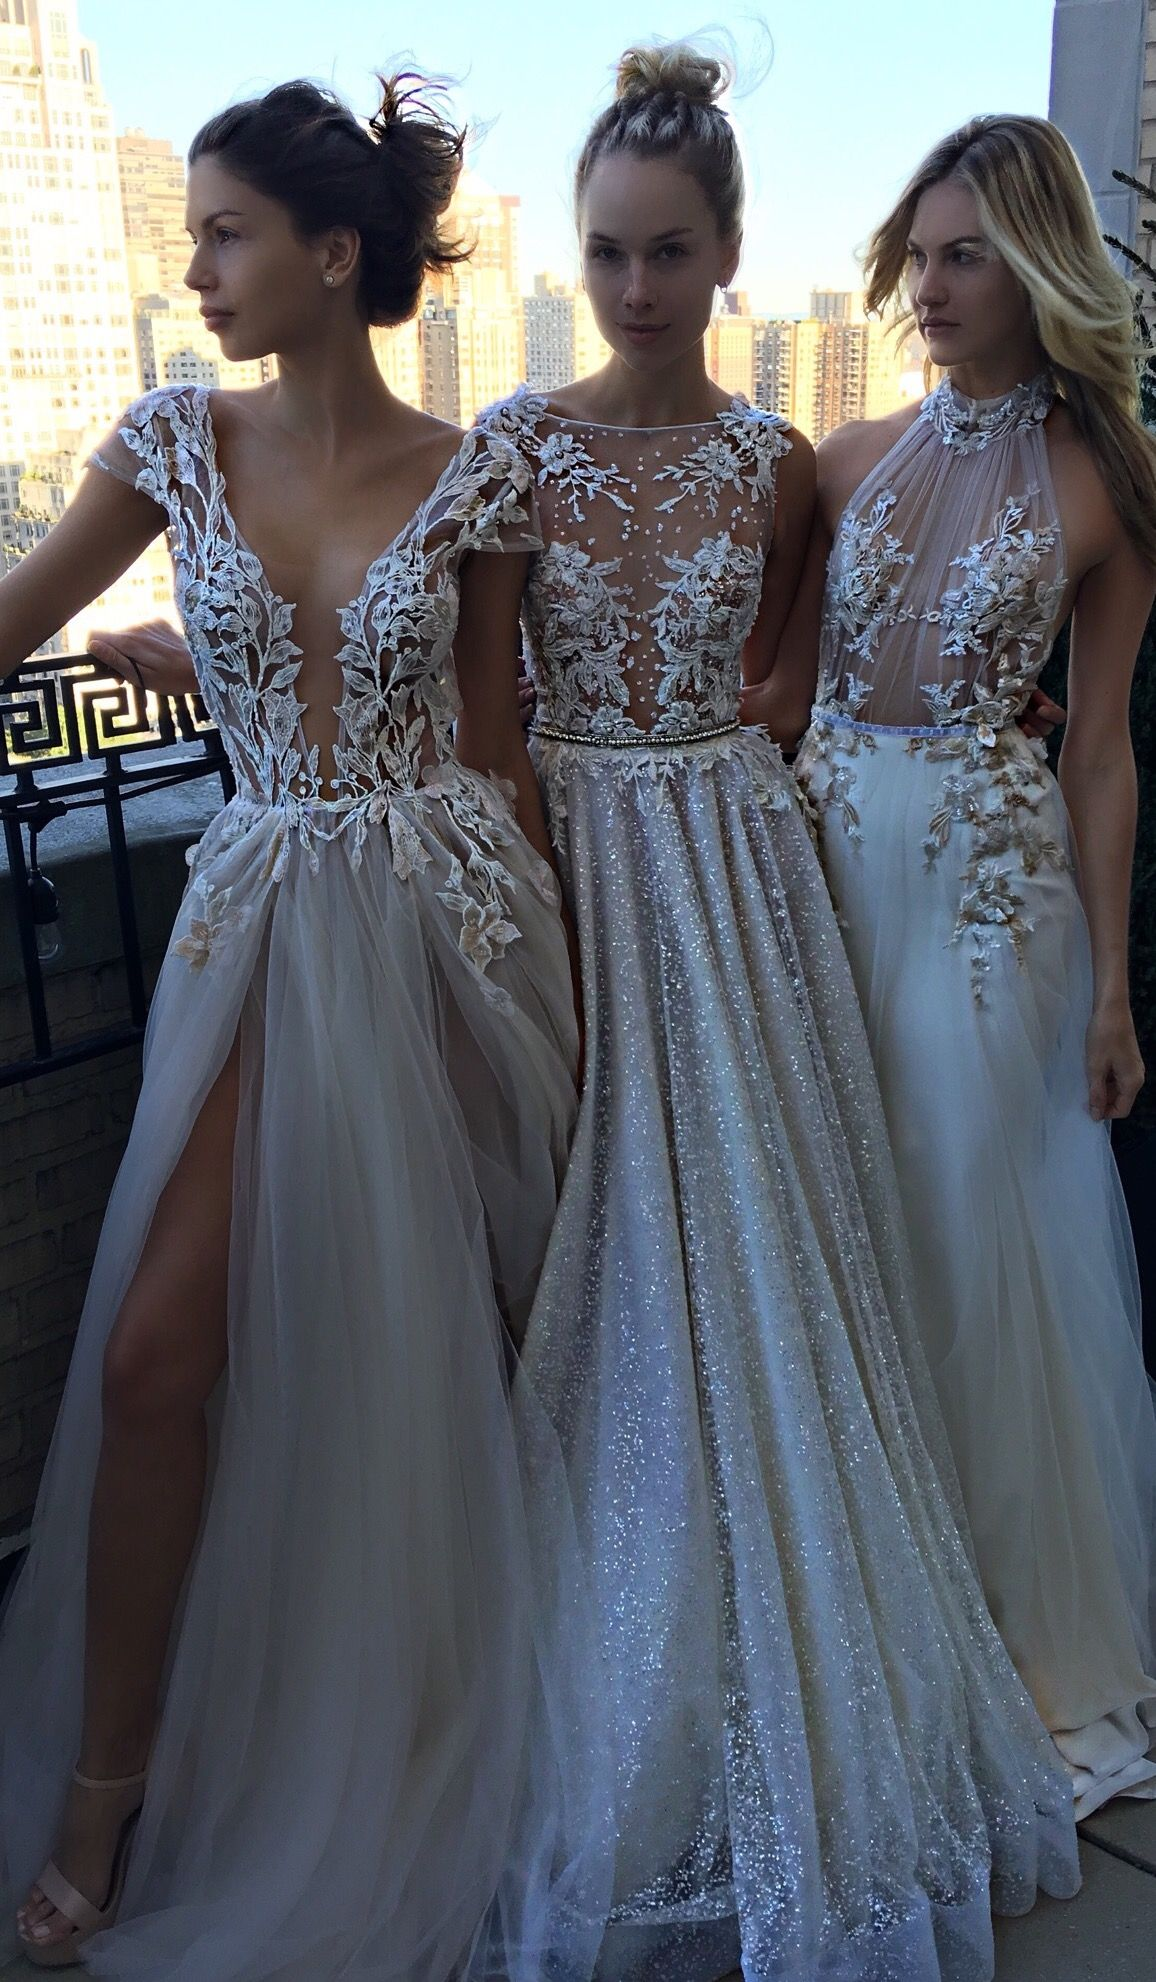 New Arrival Wedding Dress,Romantic Tulle Wedding Dresses,Long Lace Wedding  Dresses,Lace Wedding Dress from Hiprom